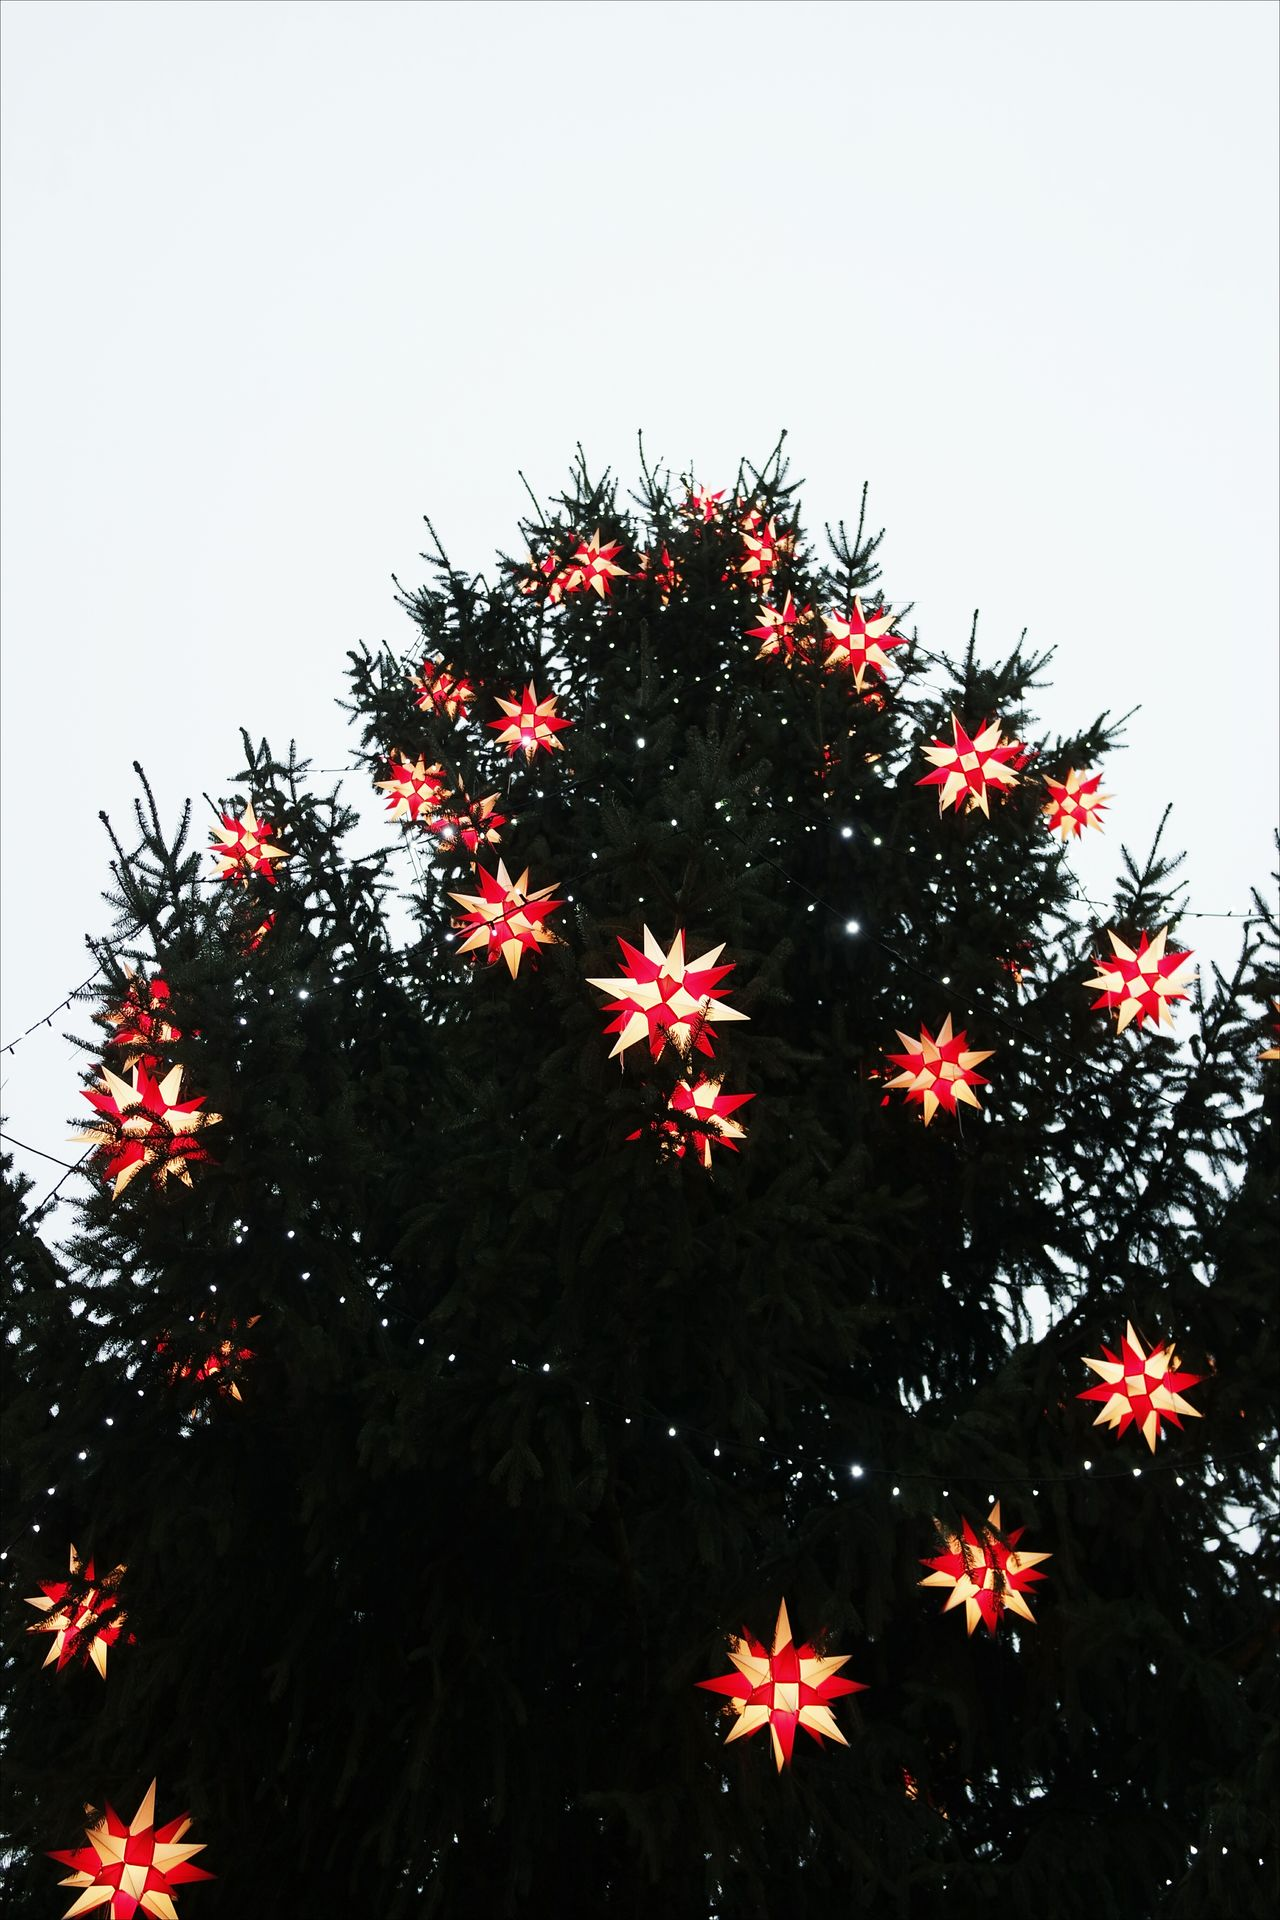 Christmas Tree Tree Celebration Christmas Red No People Sky Christmas Decoration Nature Outdoors Day Close-up